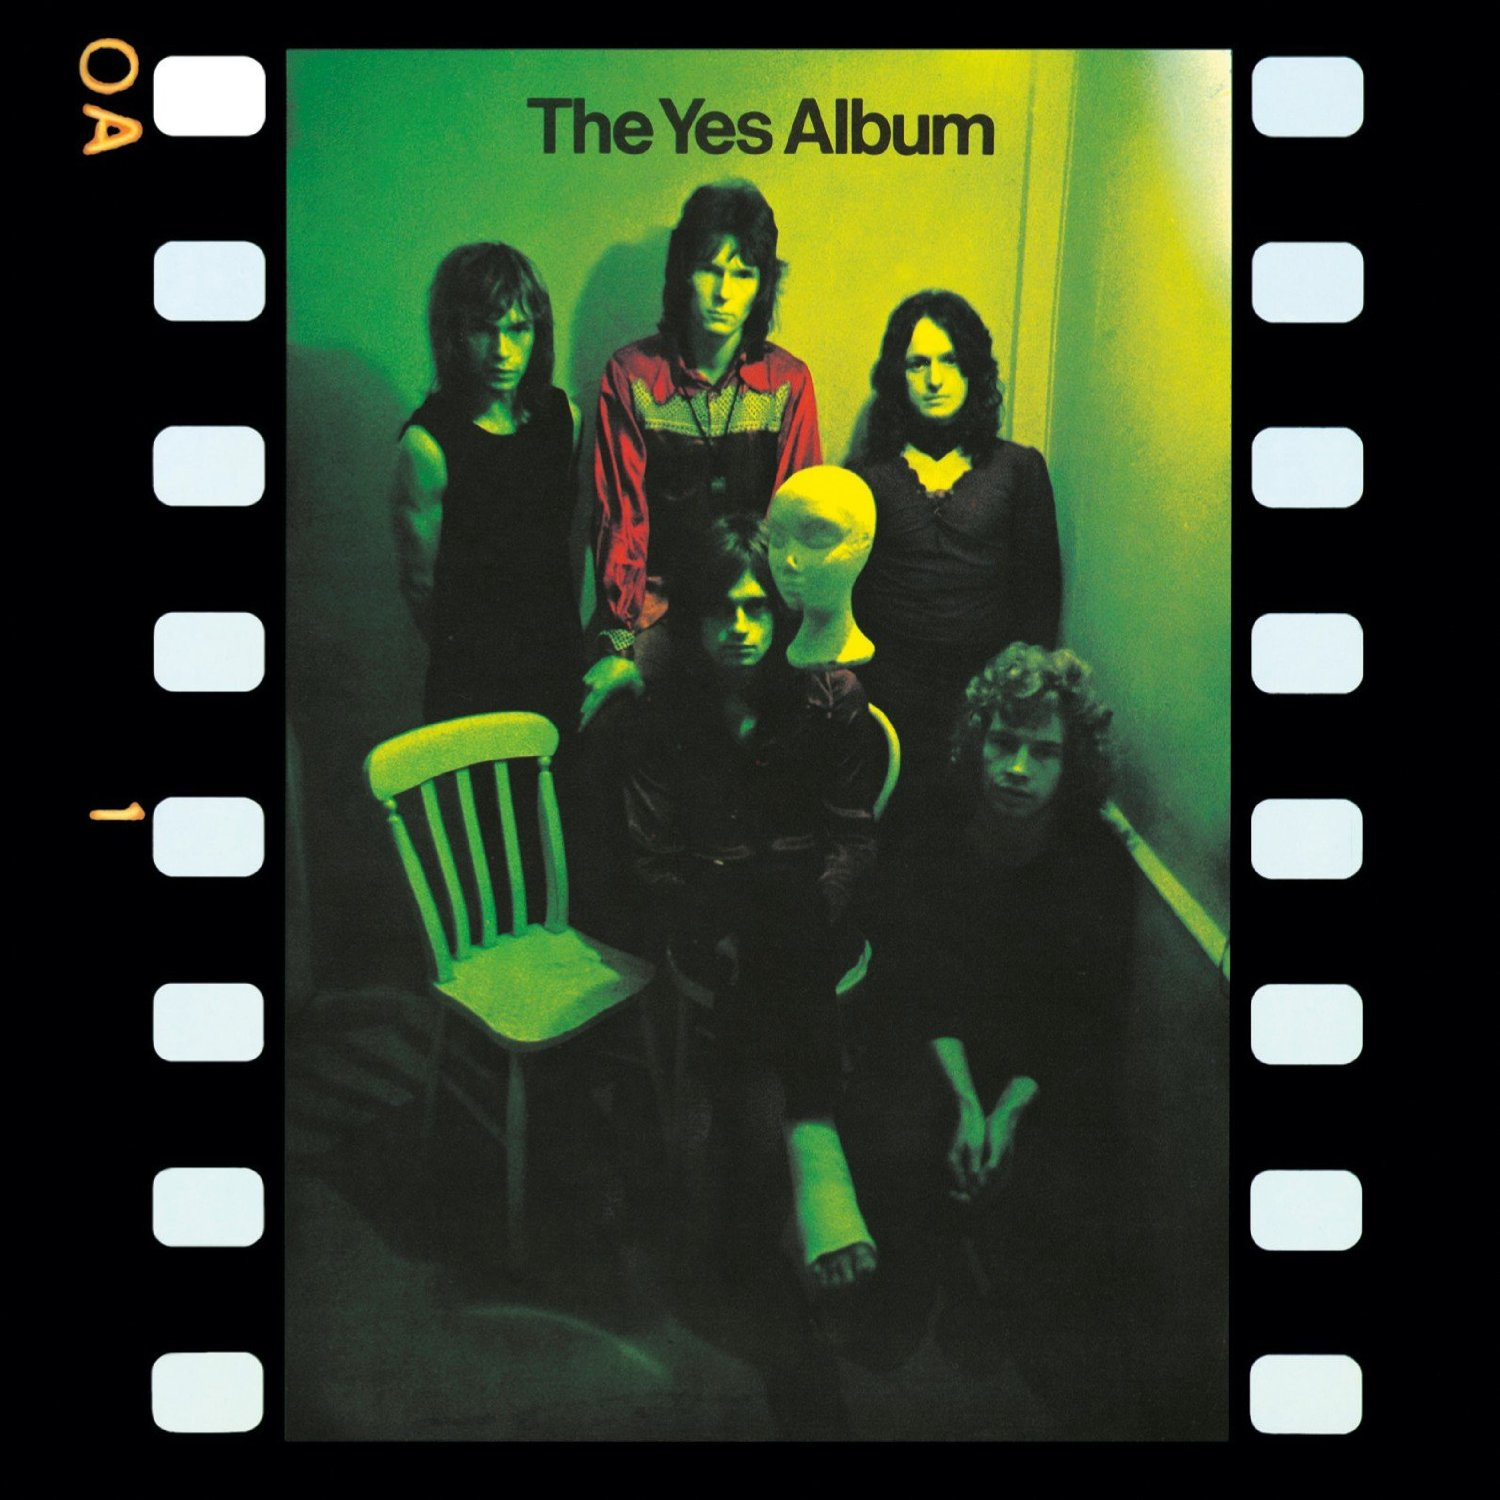 jaquettes4/Yes_The-Yes-Album.jpg